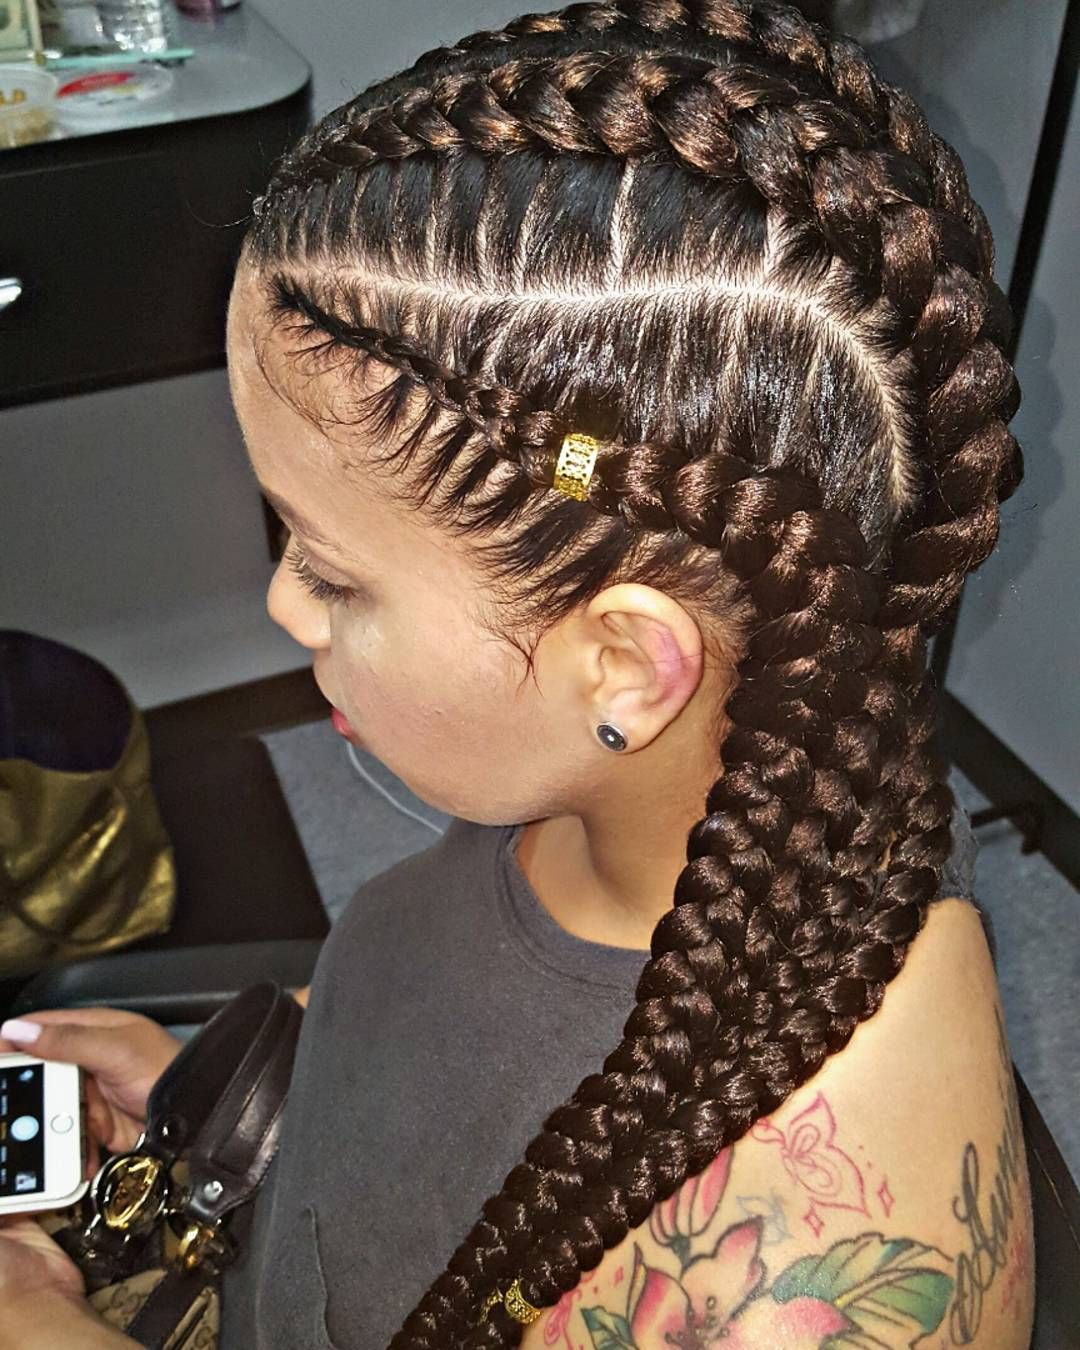 108 Likes 8 Comments Yourfavoritebraider Missy Did Em On Instagram 4 Big B Braids With Extensions Braids Hairstyles Pictures Feed In Braids Hairstyles